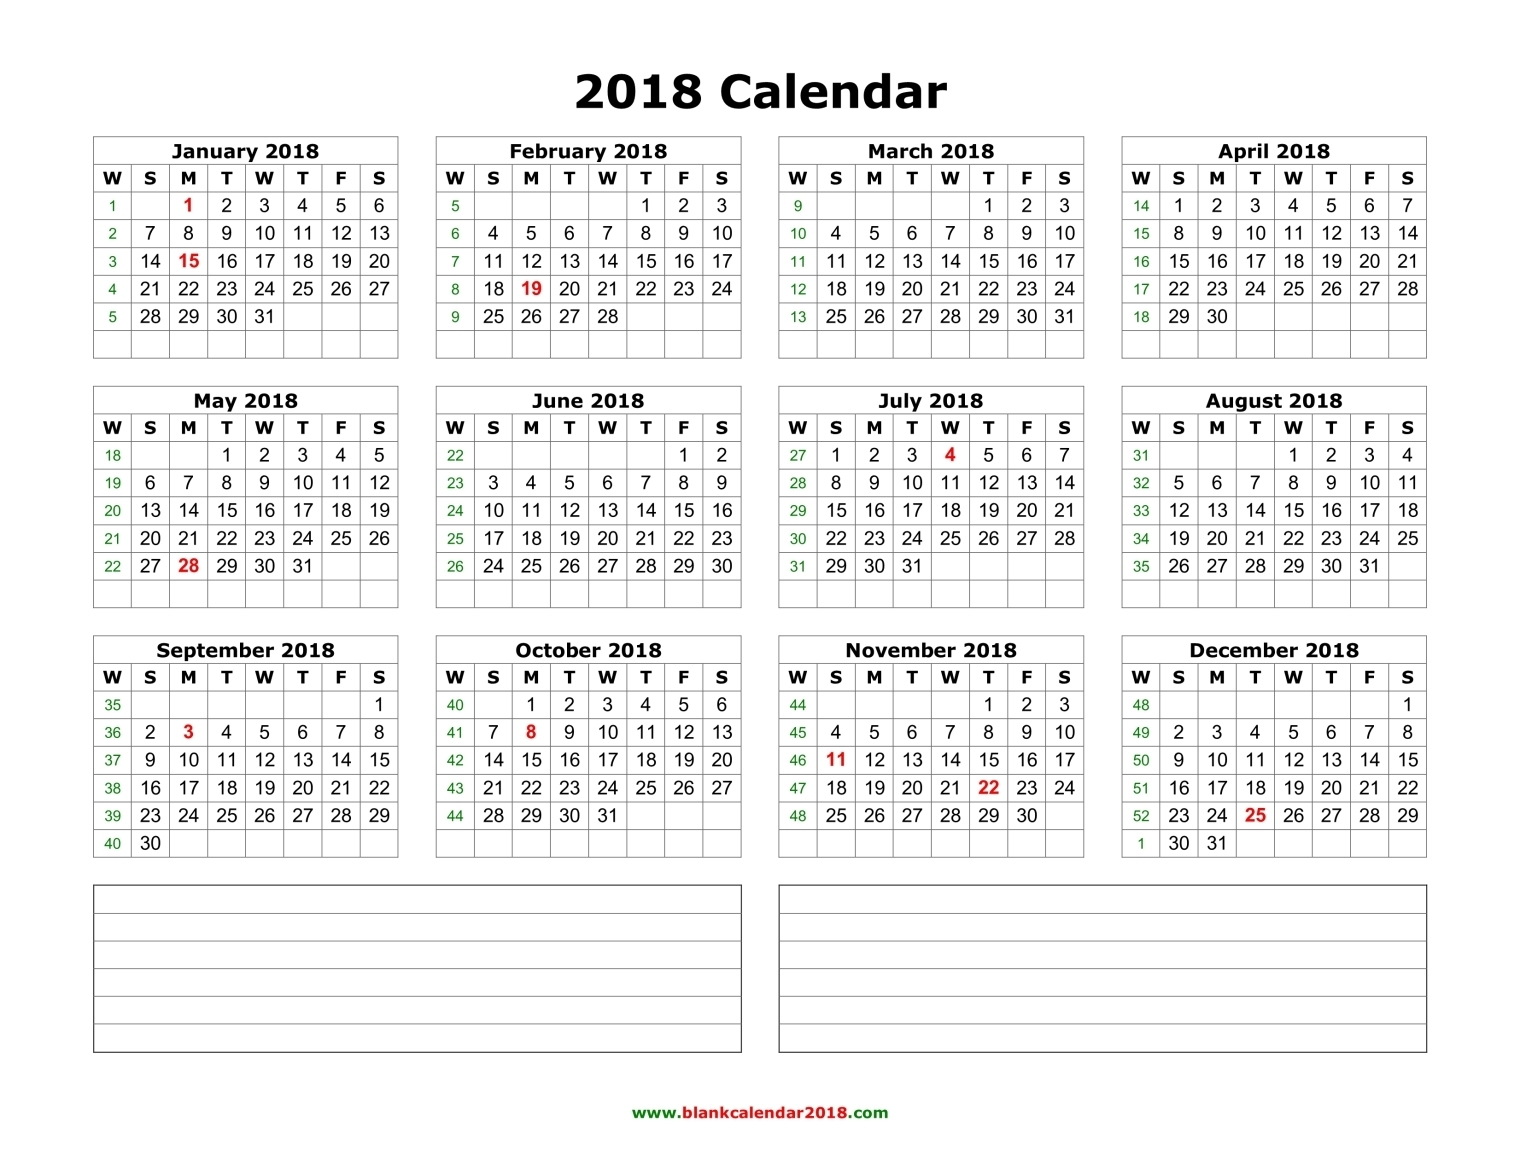 Download printable calendar 2018 with notes